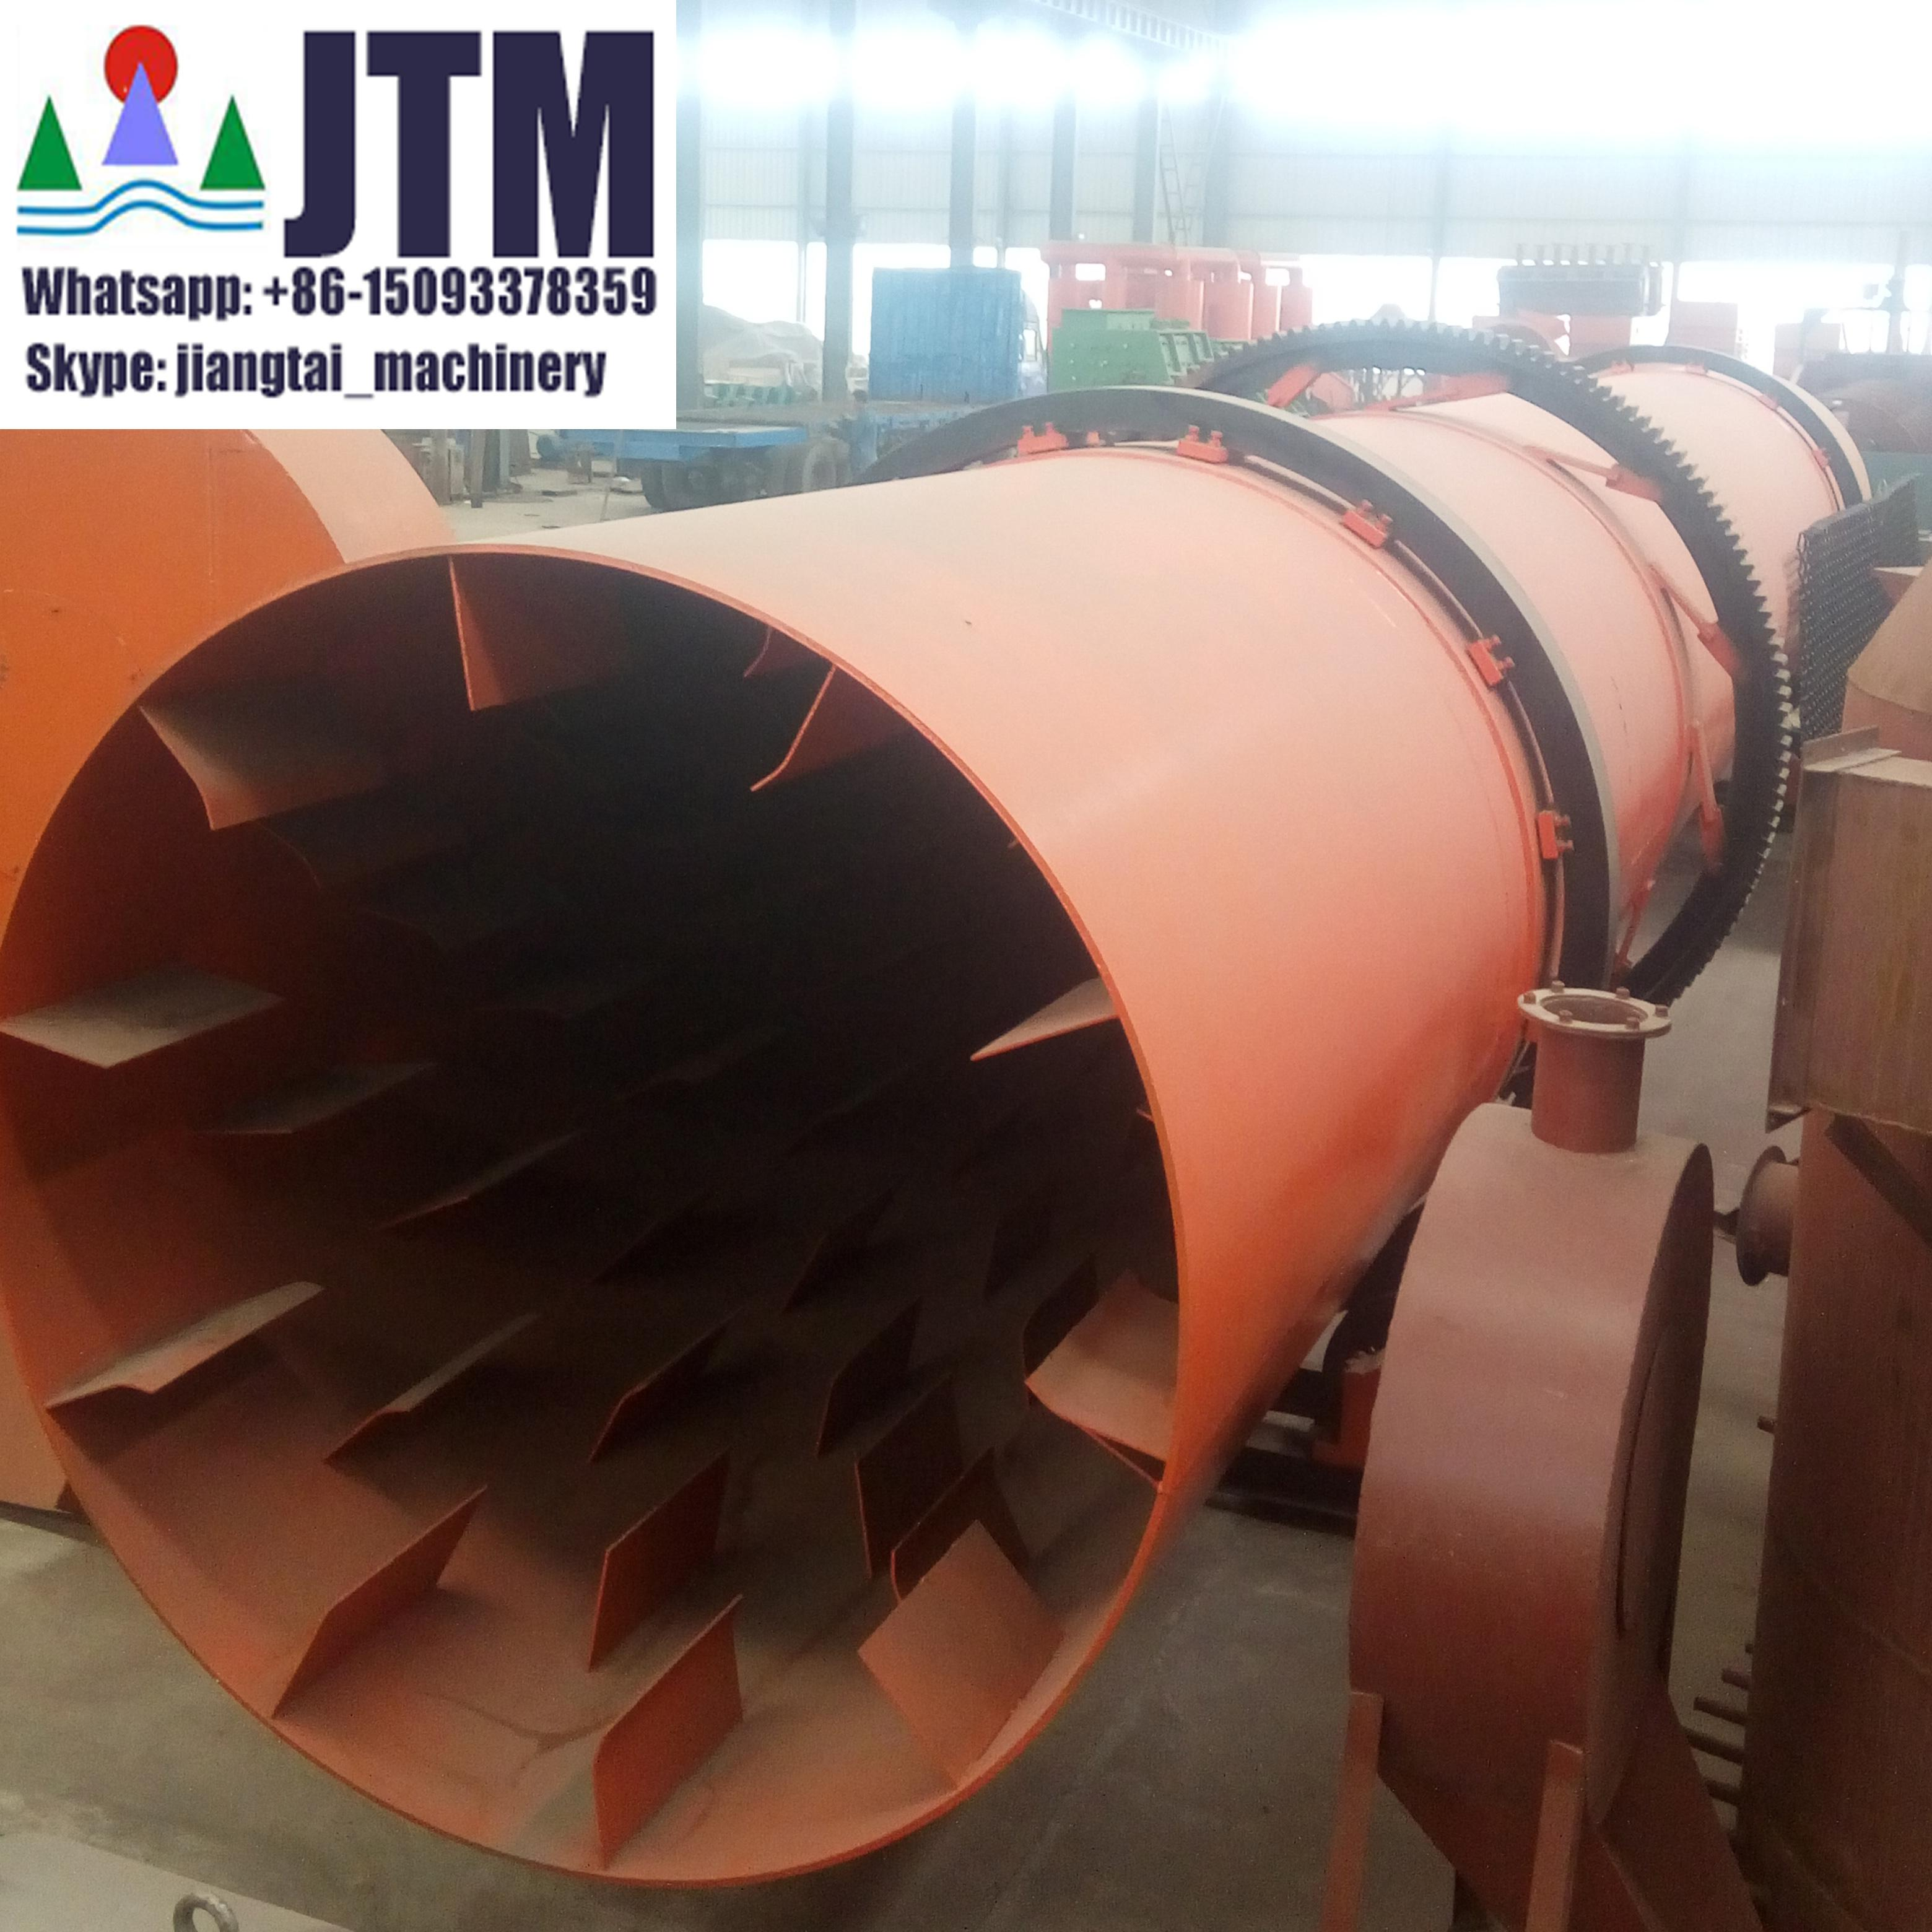 Jiangtai natural gas fuel rotary drum dryer